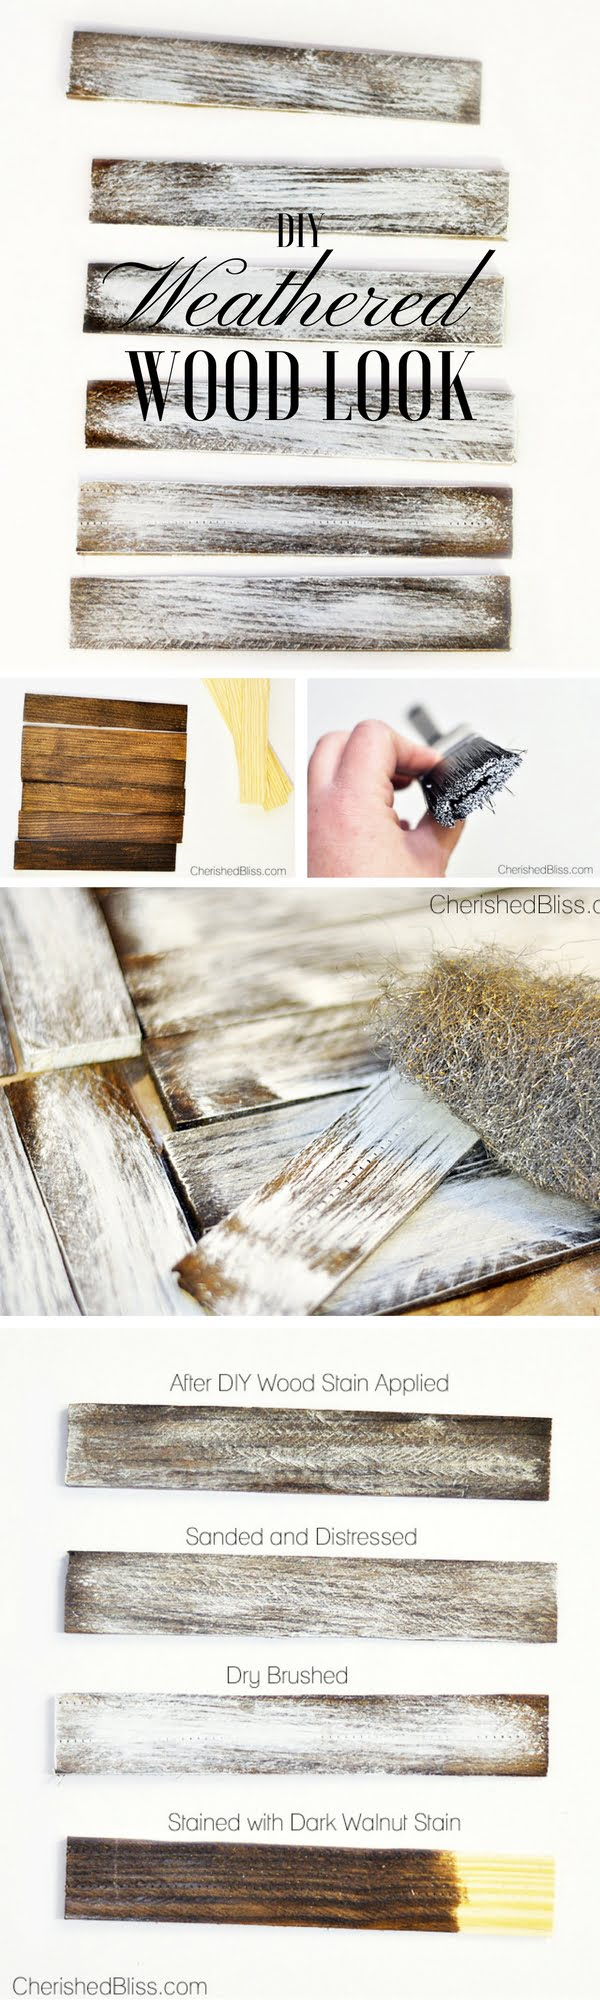 Check out the tutorial: #DIY Weathered Wood Look